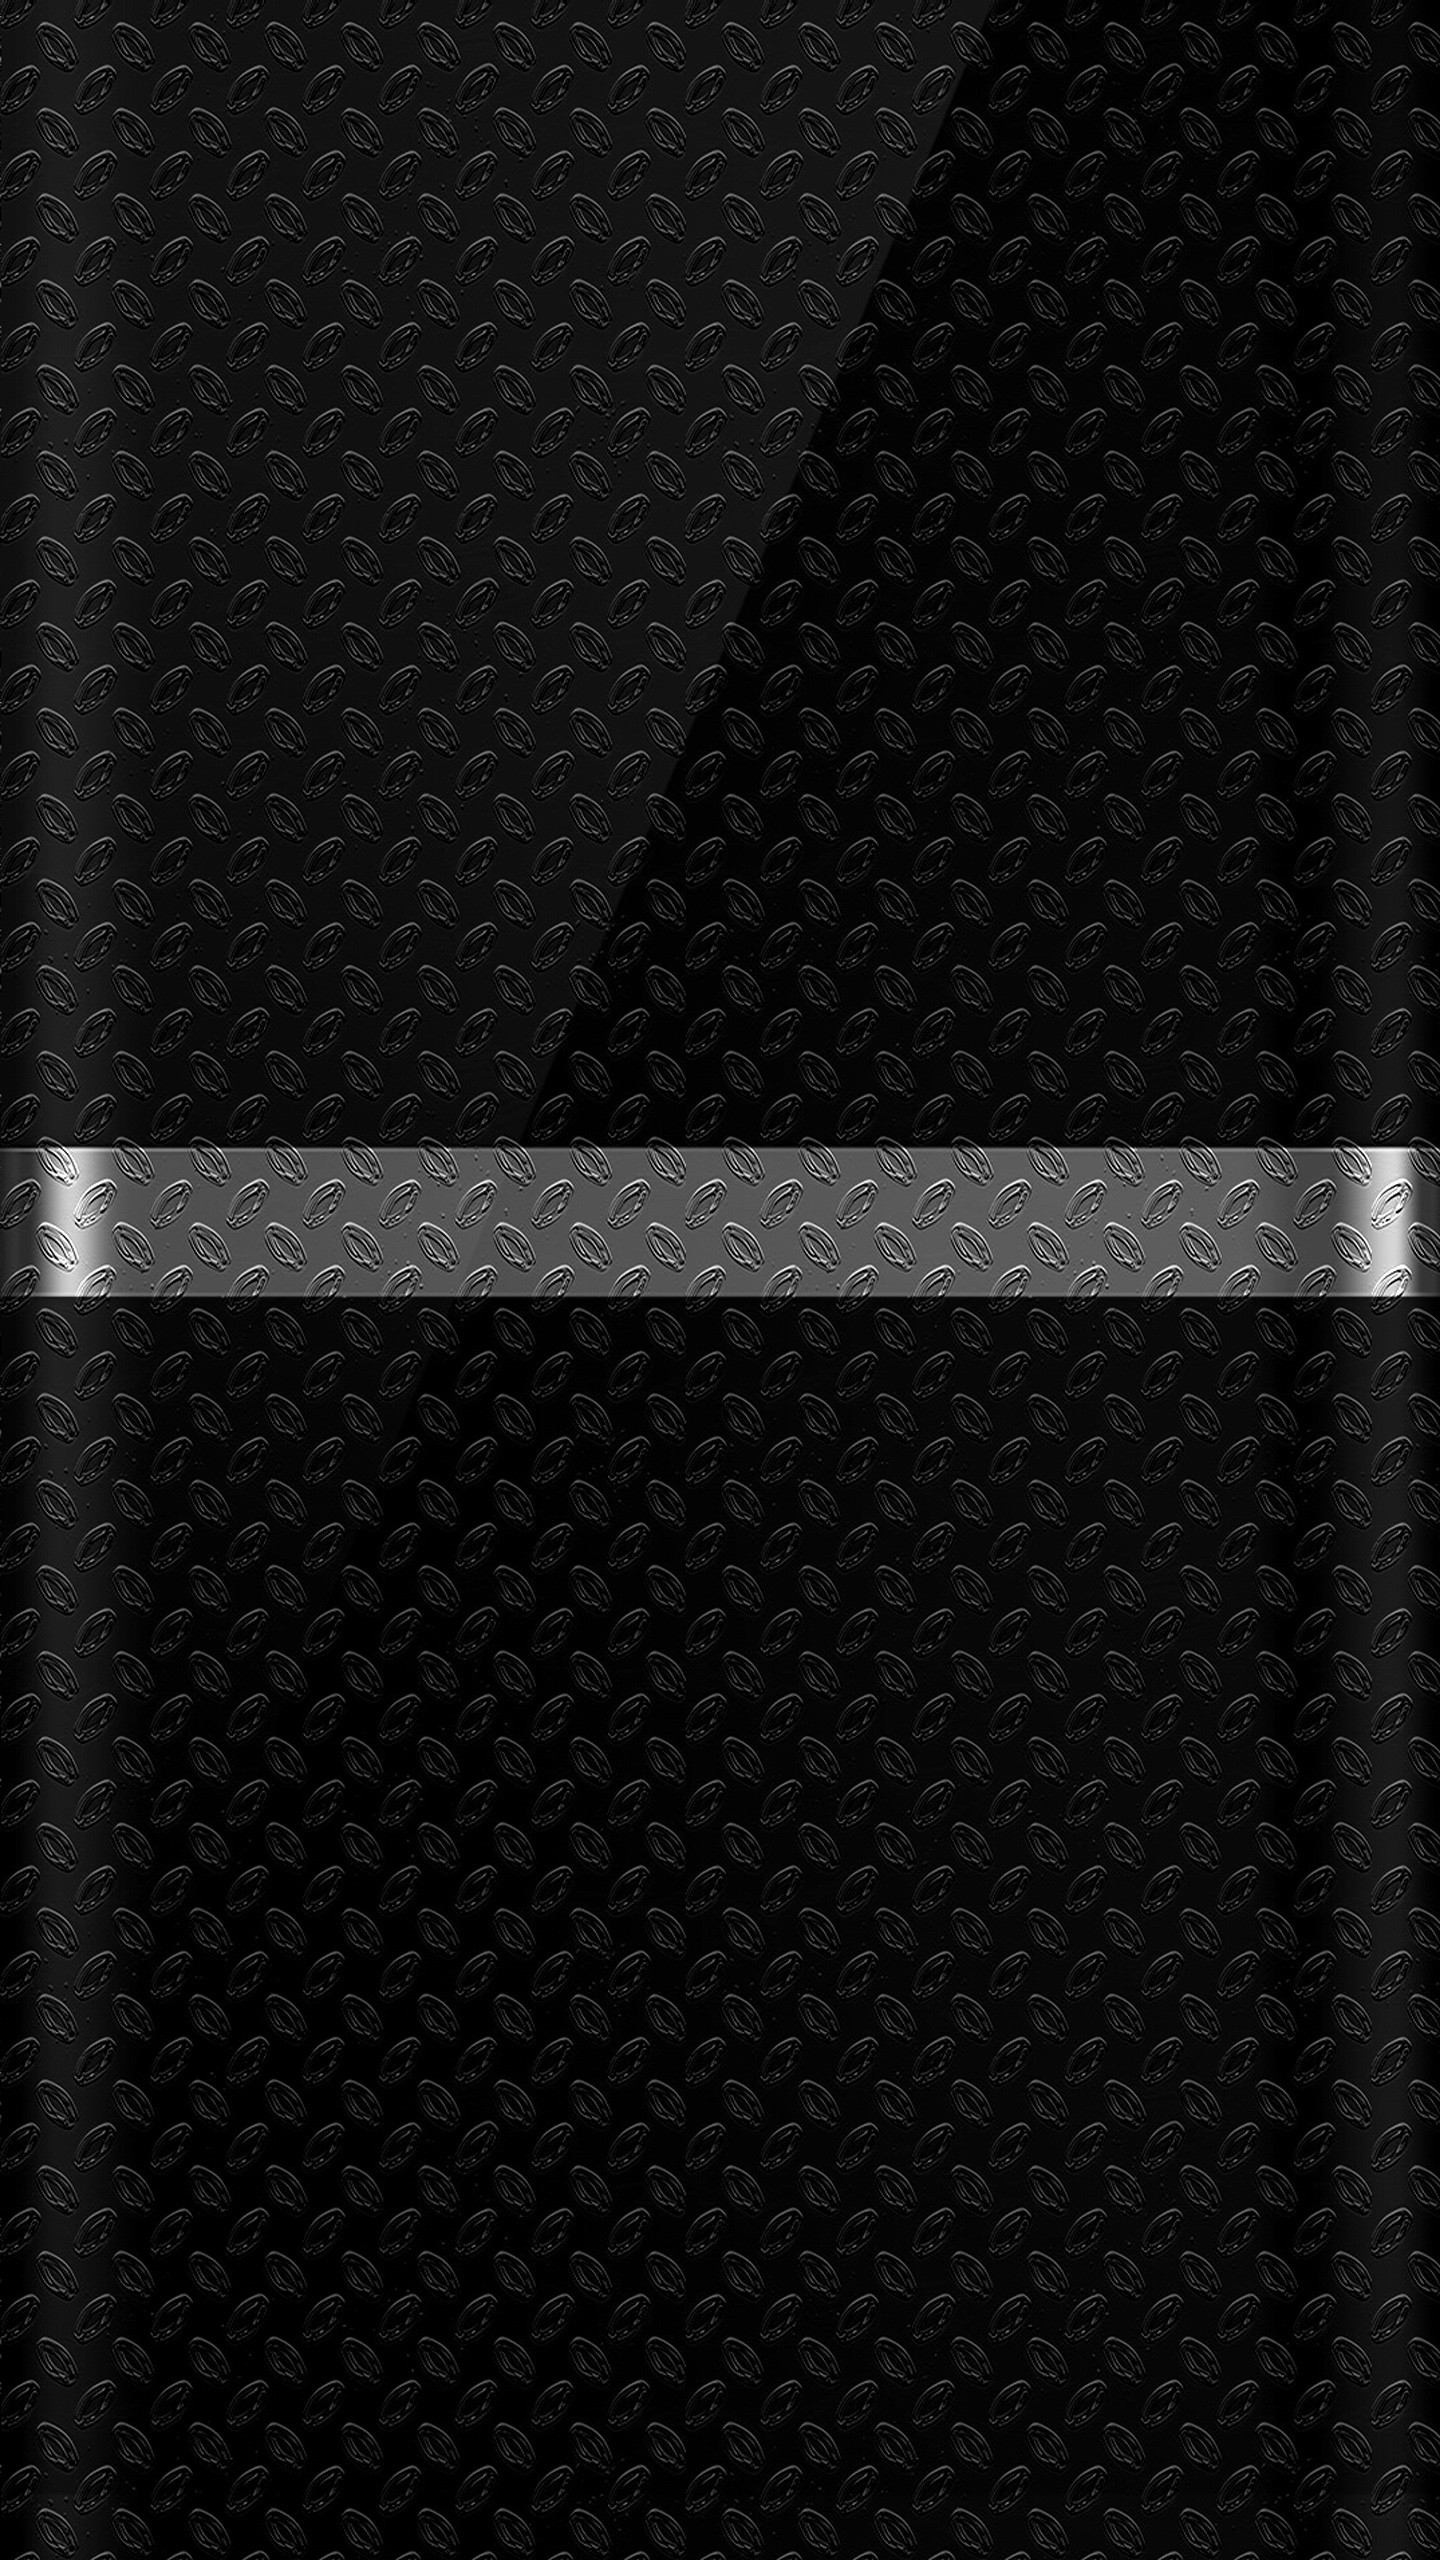 1440x2560 Dark S7 Edge Wallpaper 07 with Black Background and Silver Line